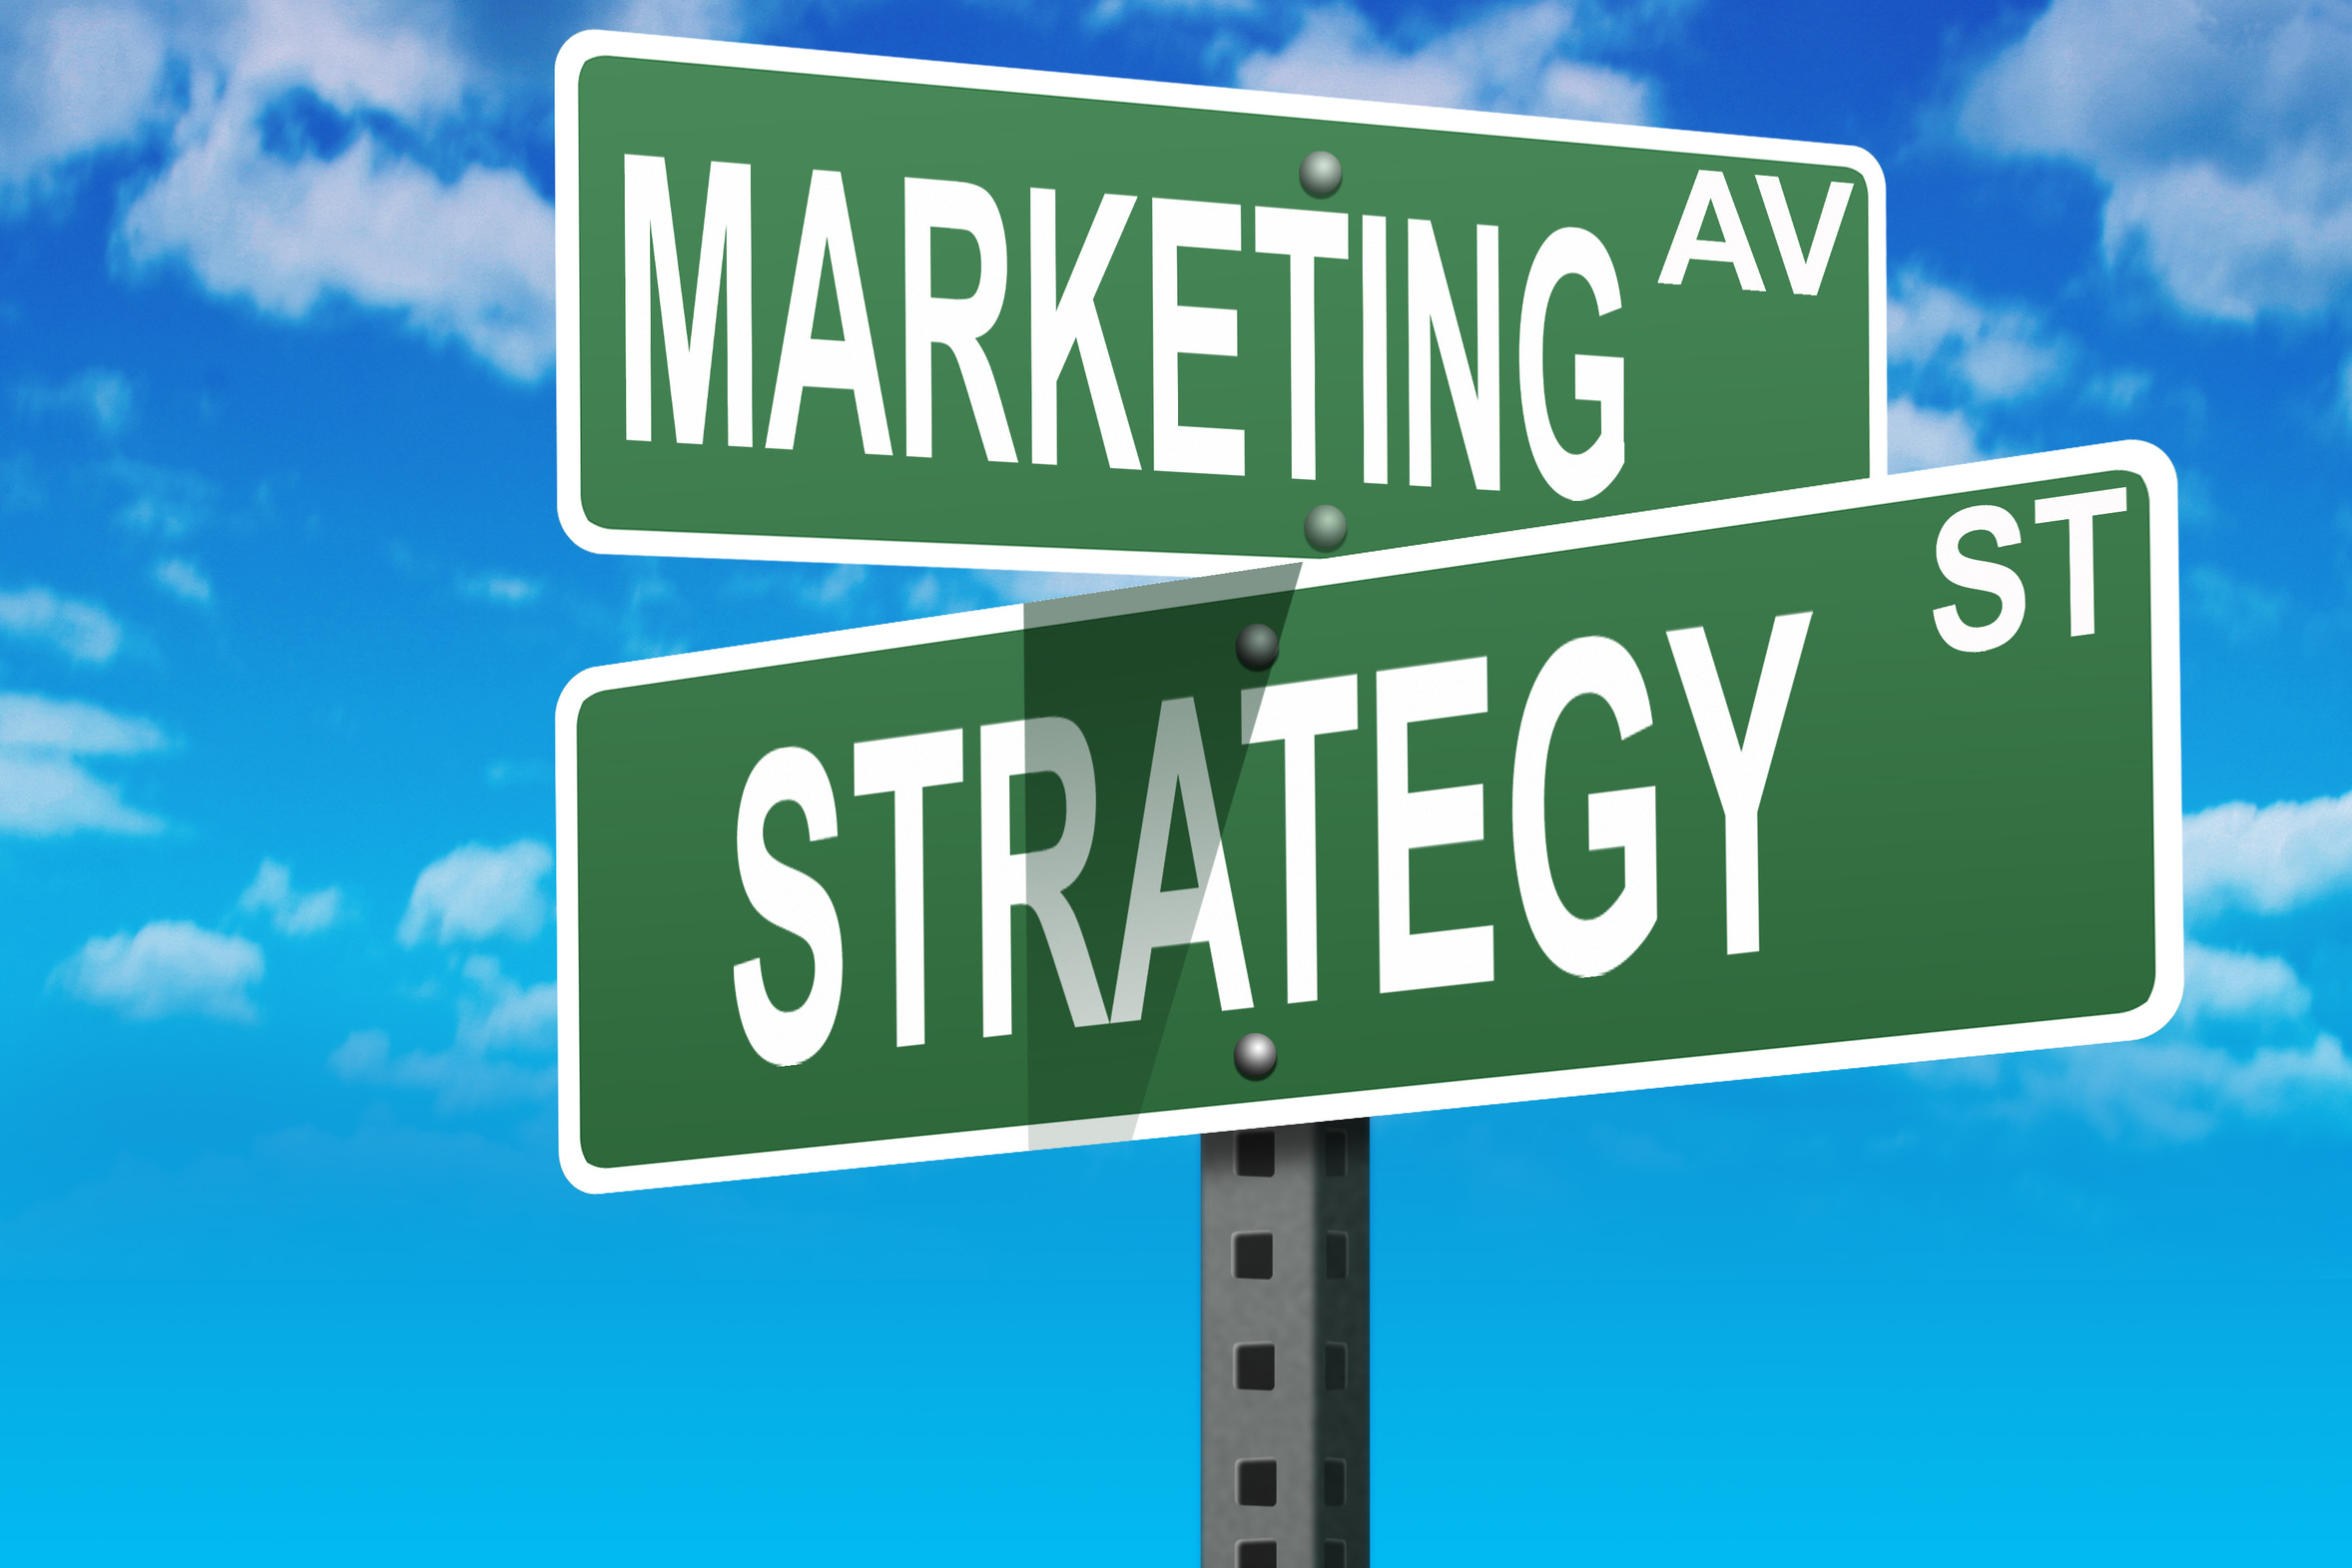 The Marketing Skills You Need and How to Use Them